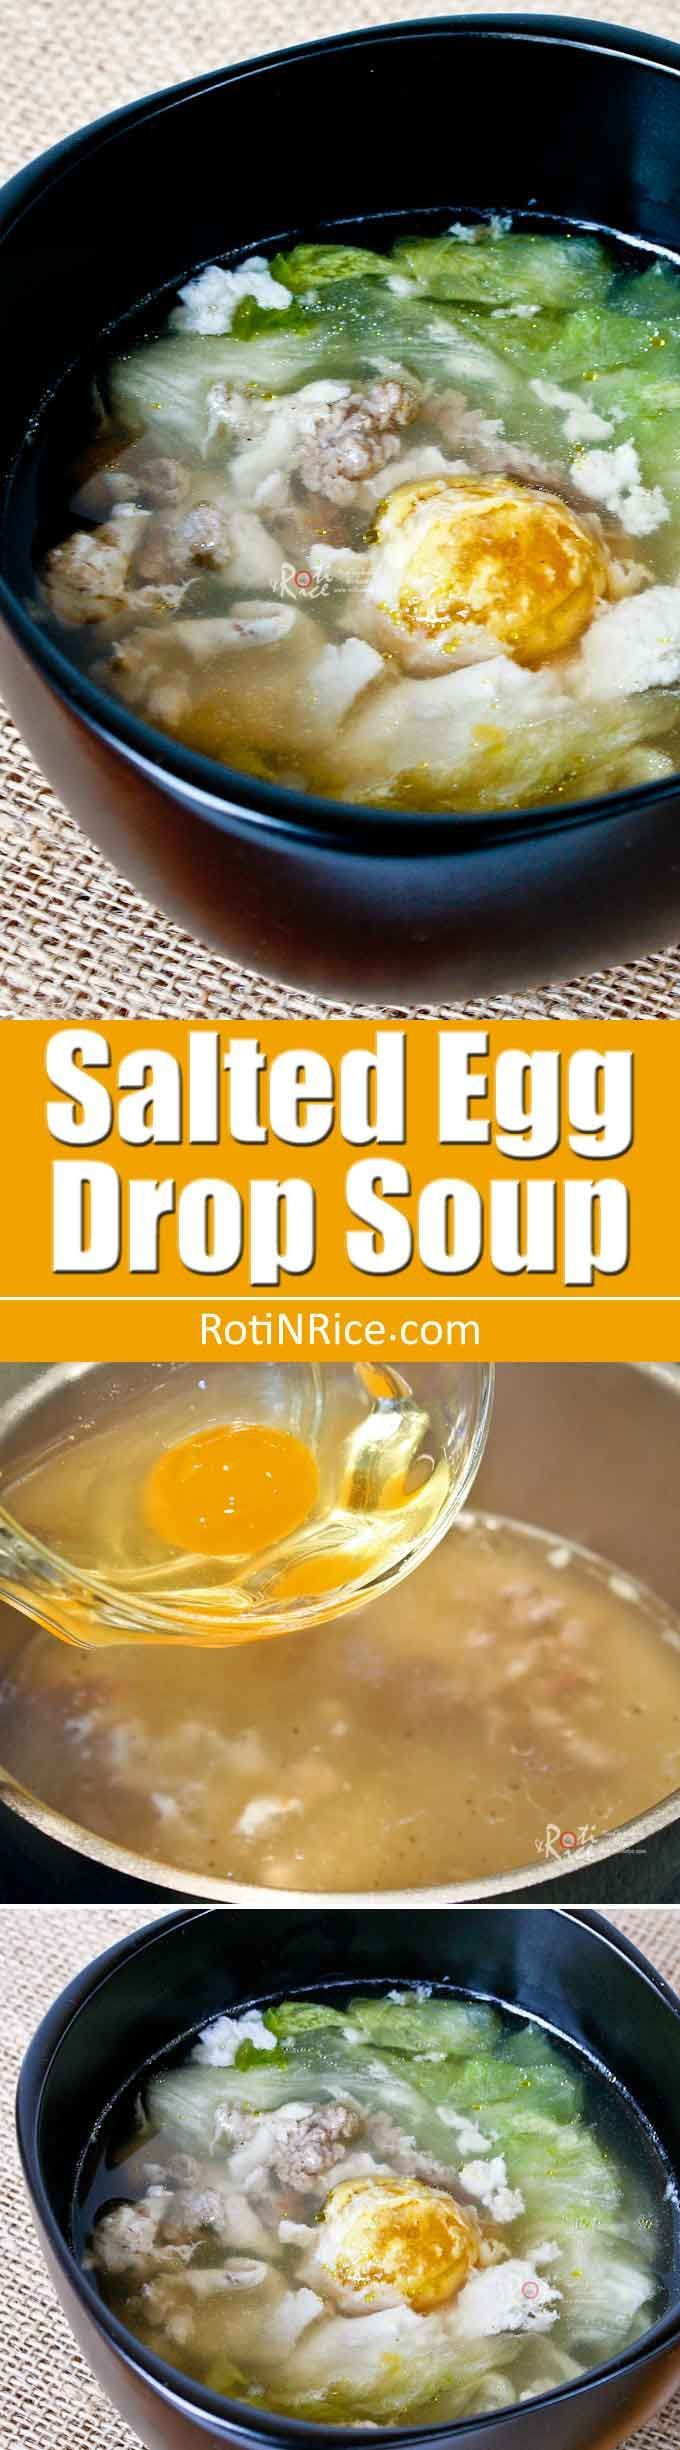 Salted Egg Drop Soup - a twist on a popular classic made even more tasty with the addition of ground pork and salted egg. | RotiNRice.com